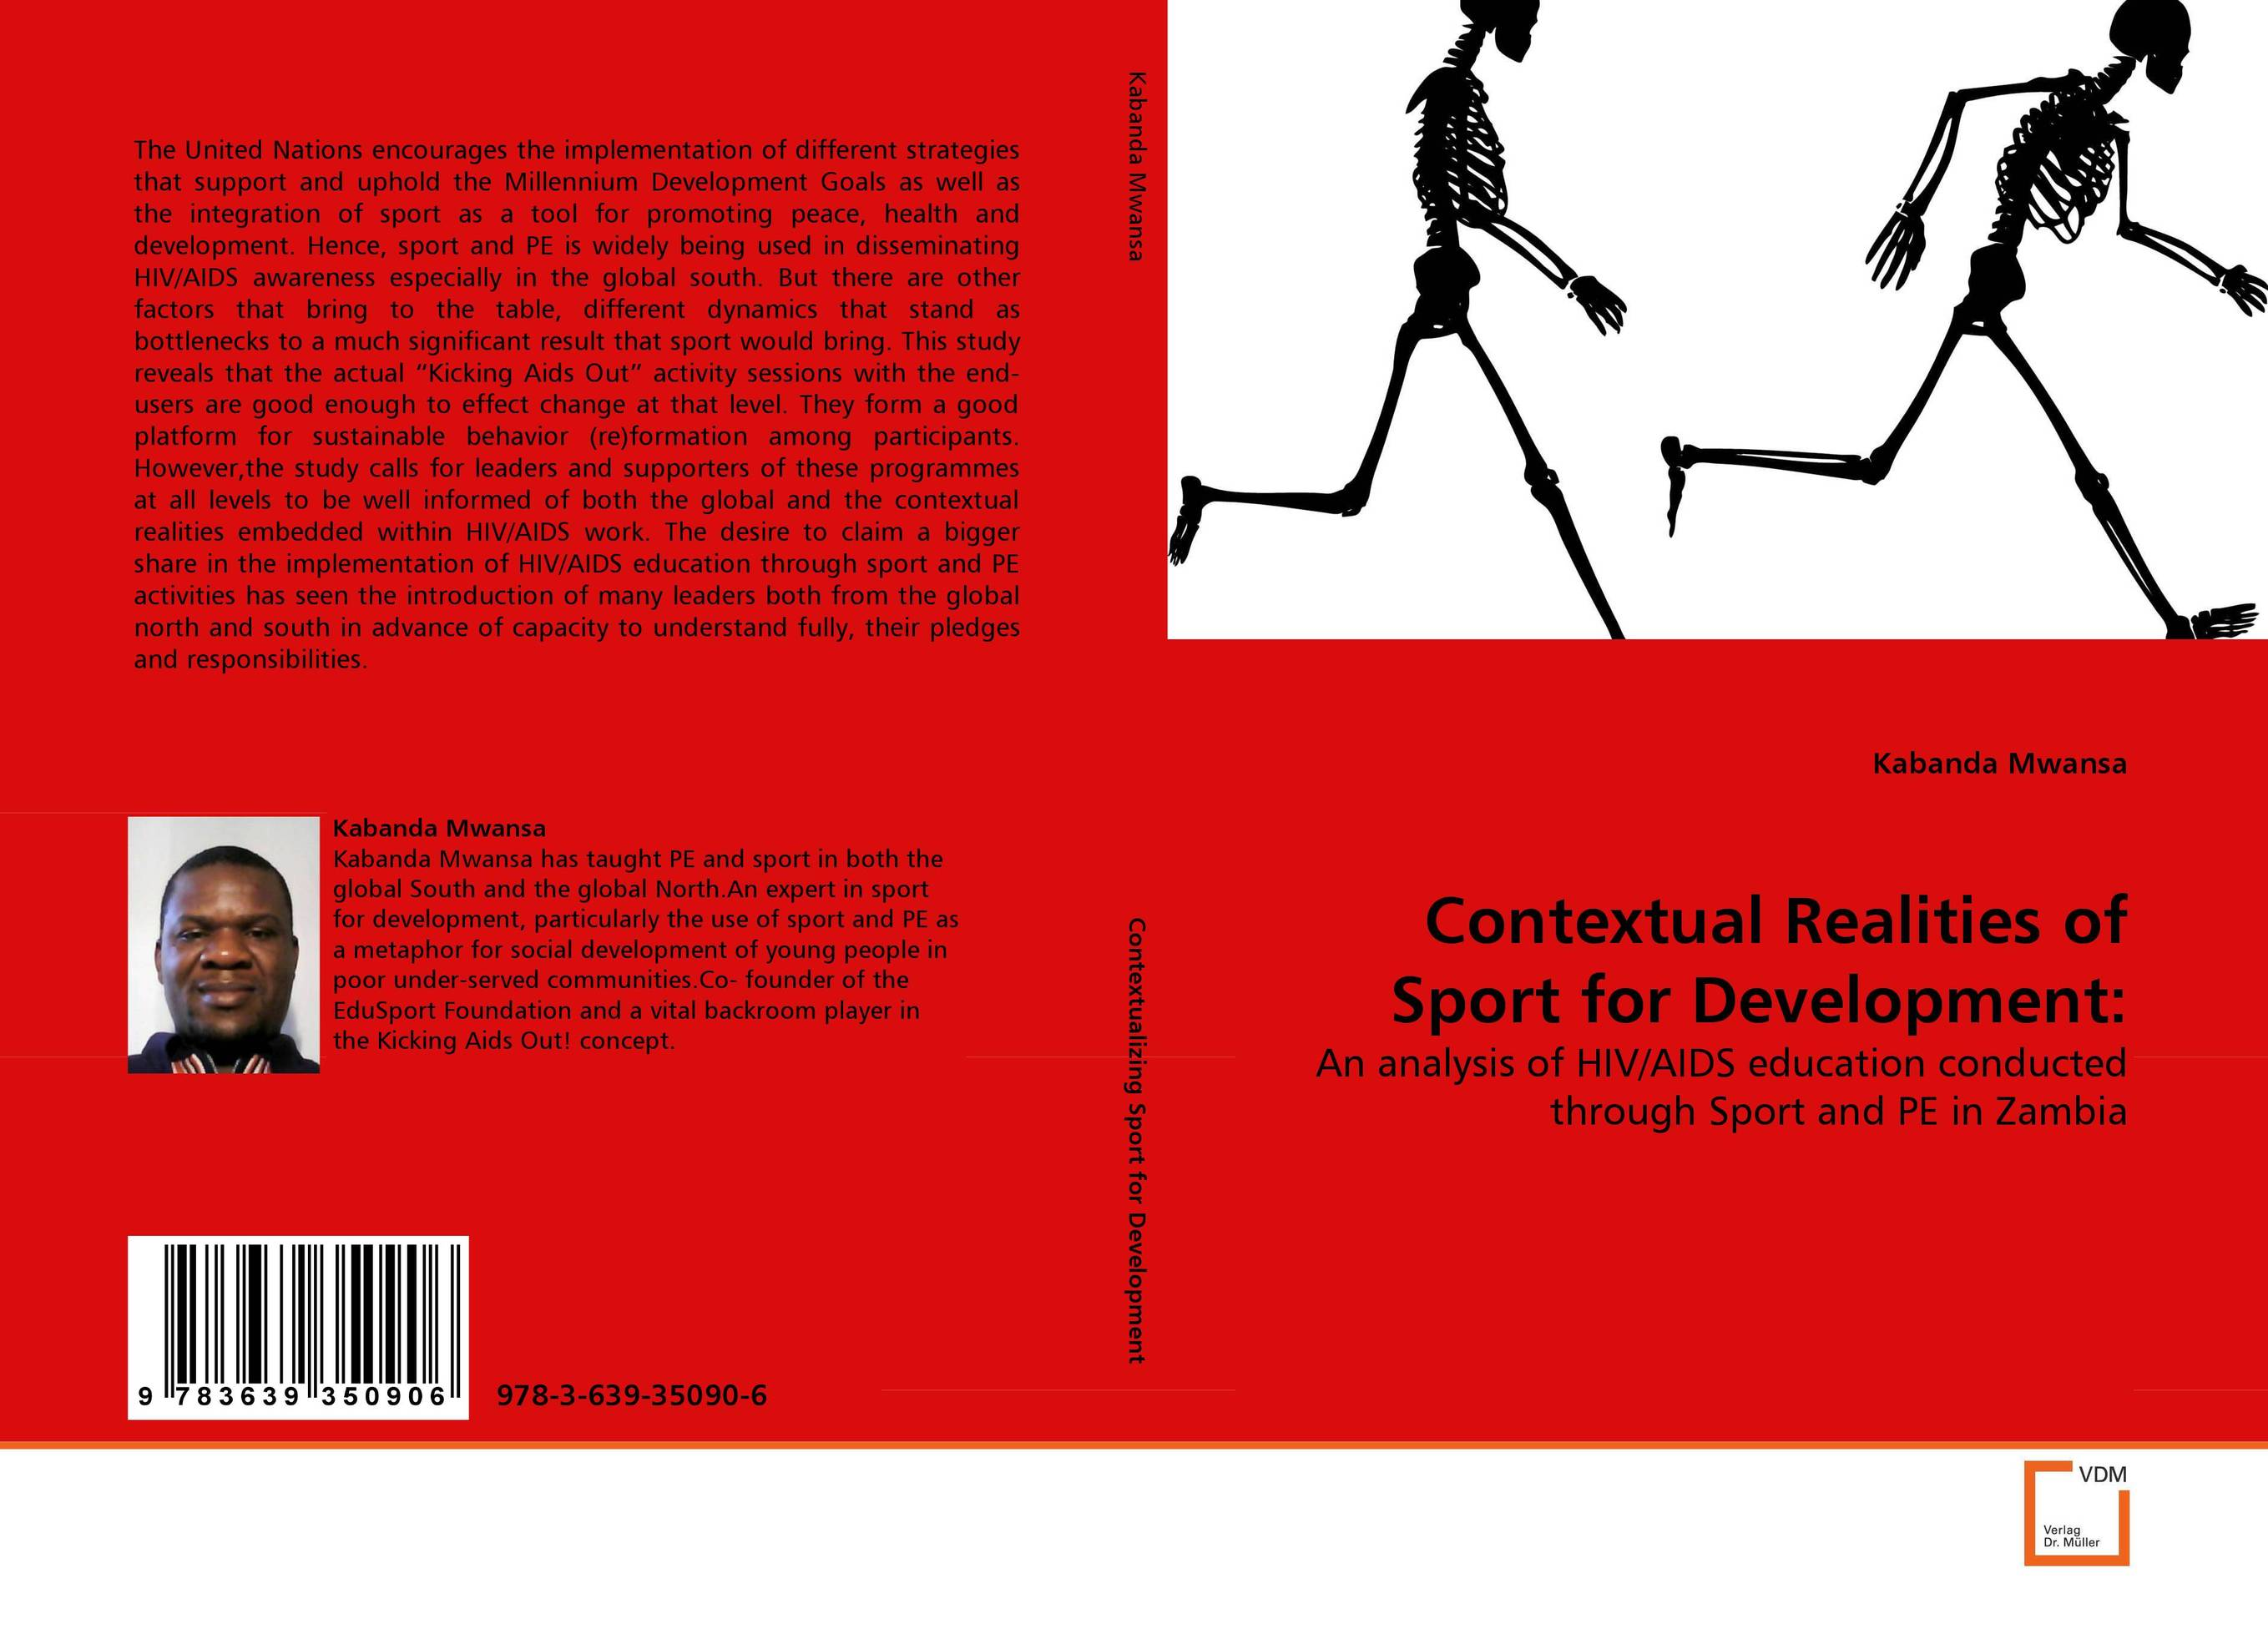 Contextual Realities of Sport for Development: